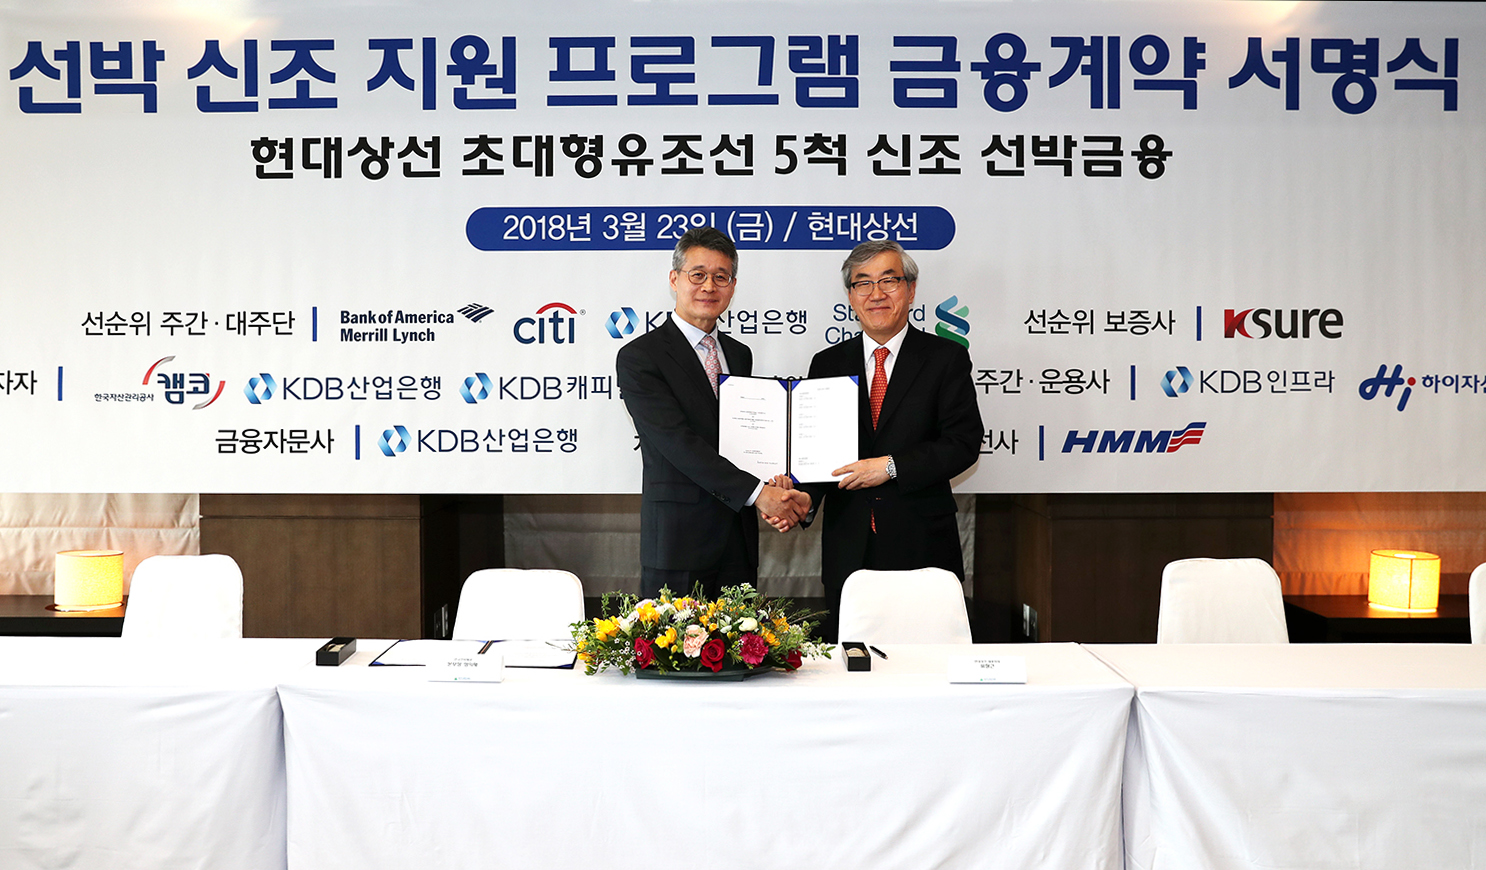 Hyundai Merchant Marine (HMM) CEO Yoo Chang-keun (right) and Jeong Ik-chae, director of Korea Shipping and Maritime Transportation, shake hands after signing a financial contract for new shipbuilding support at the HMM headquarters in Seoul on March 23.